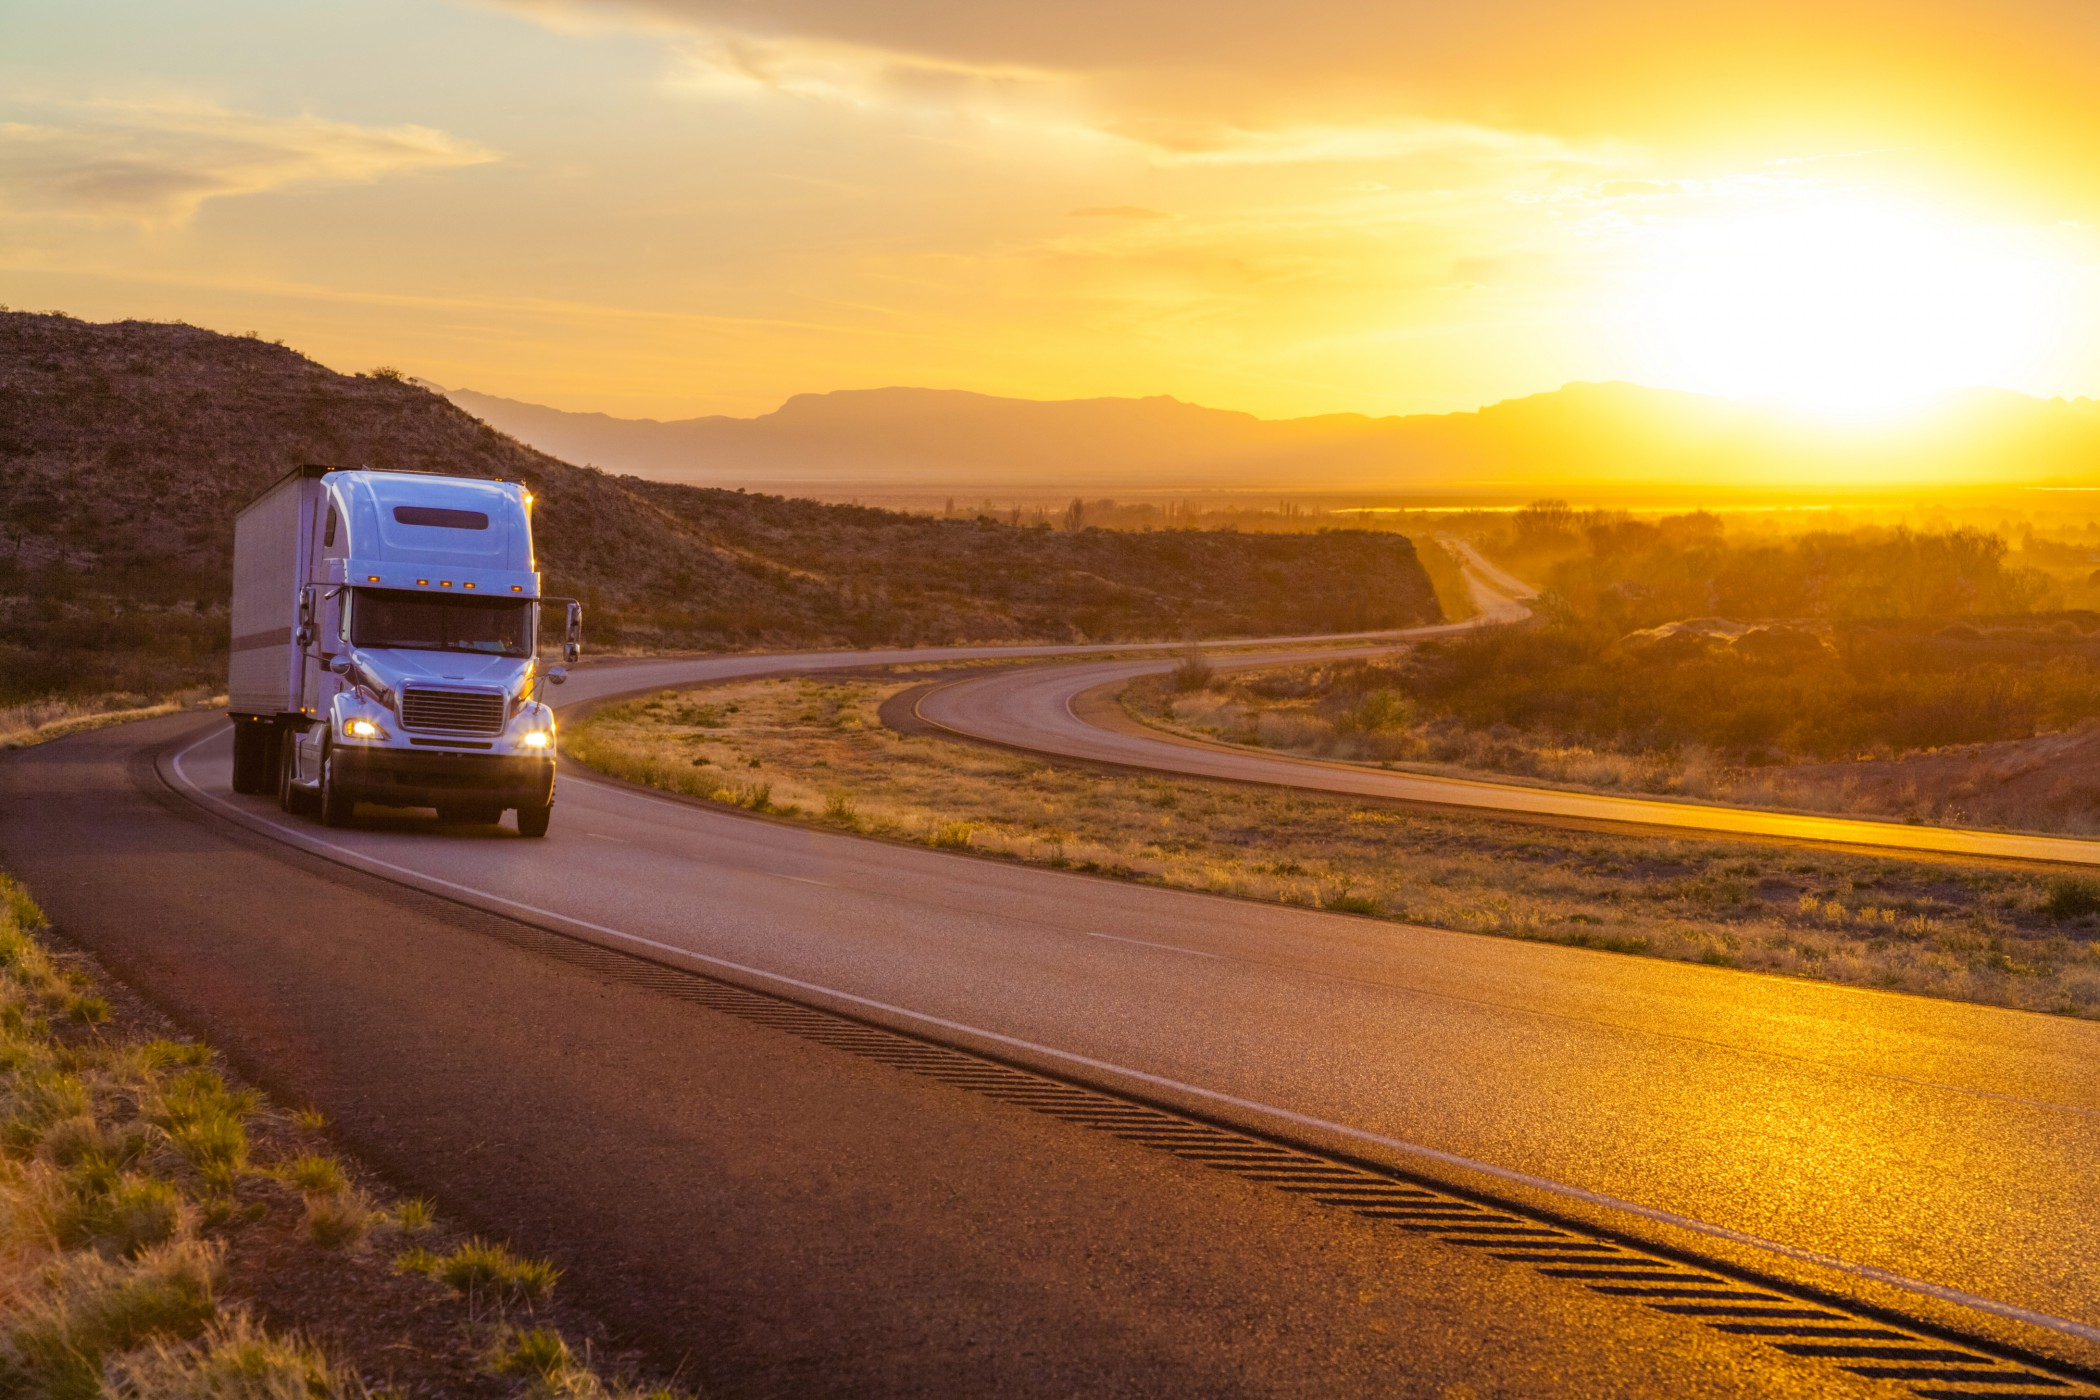 Big Data Has Made a Big Difference for Trucking Fleets